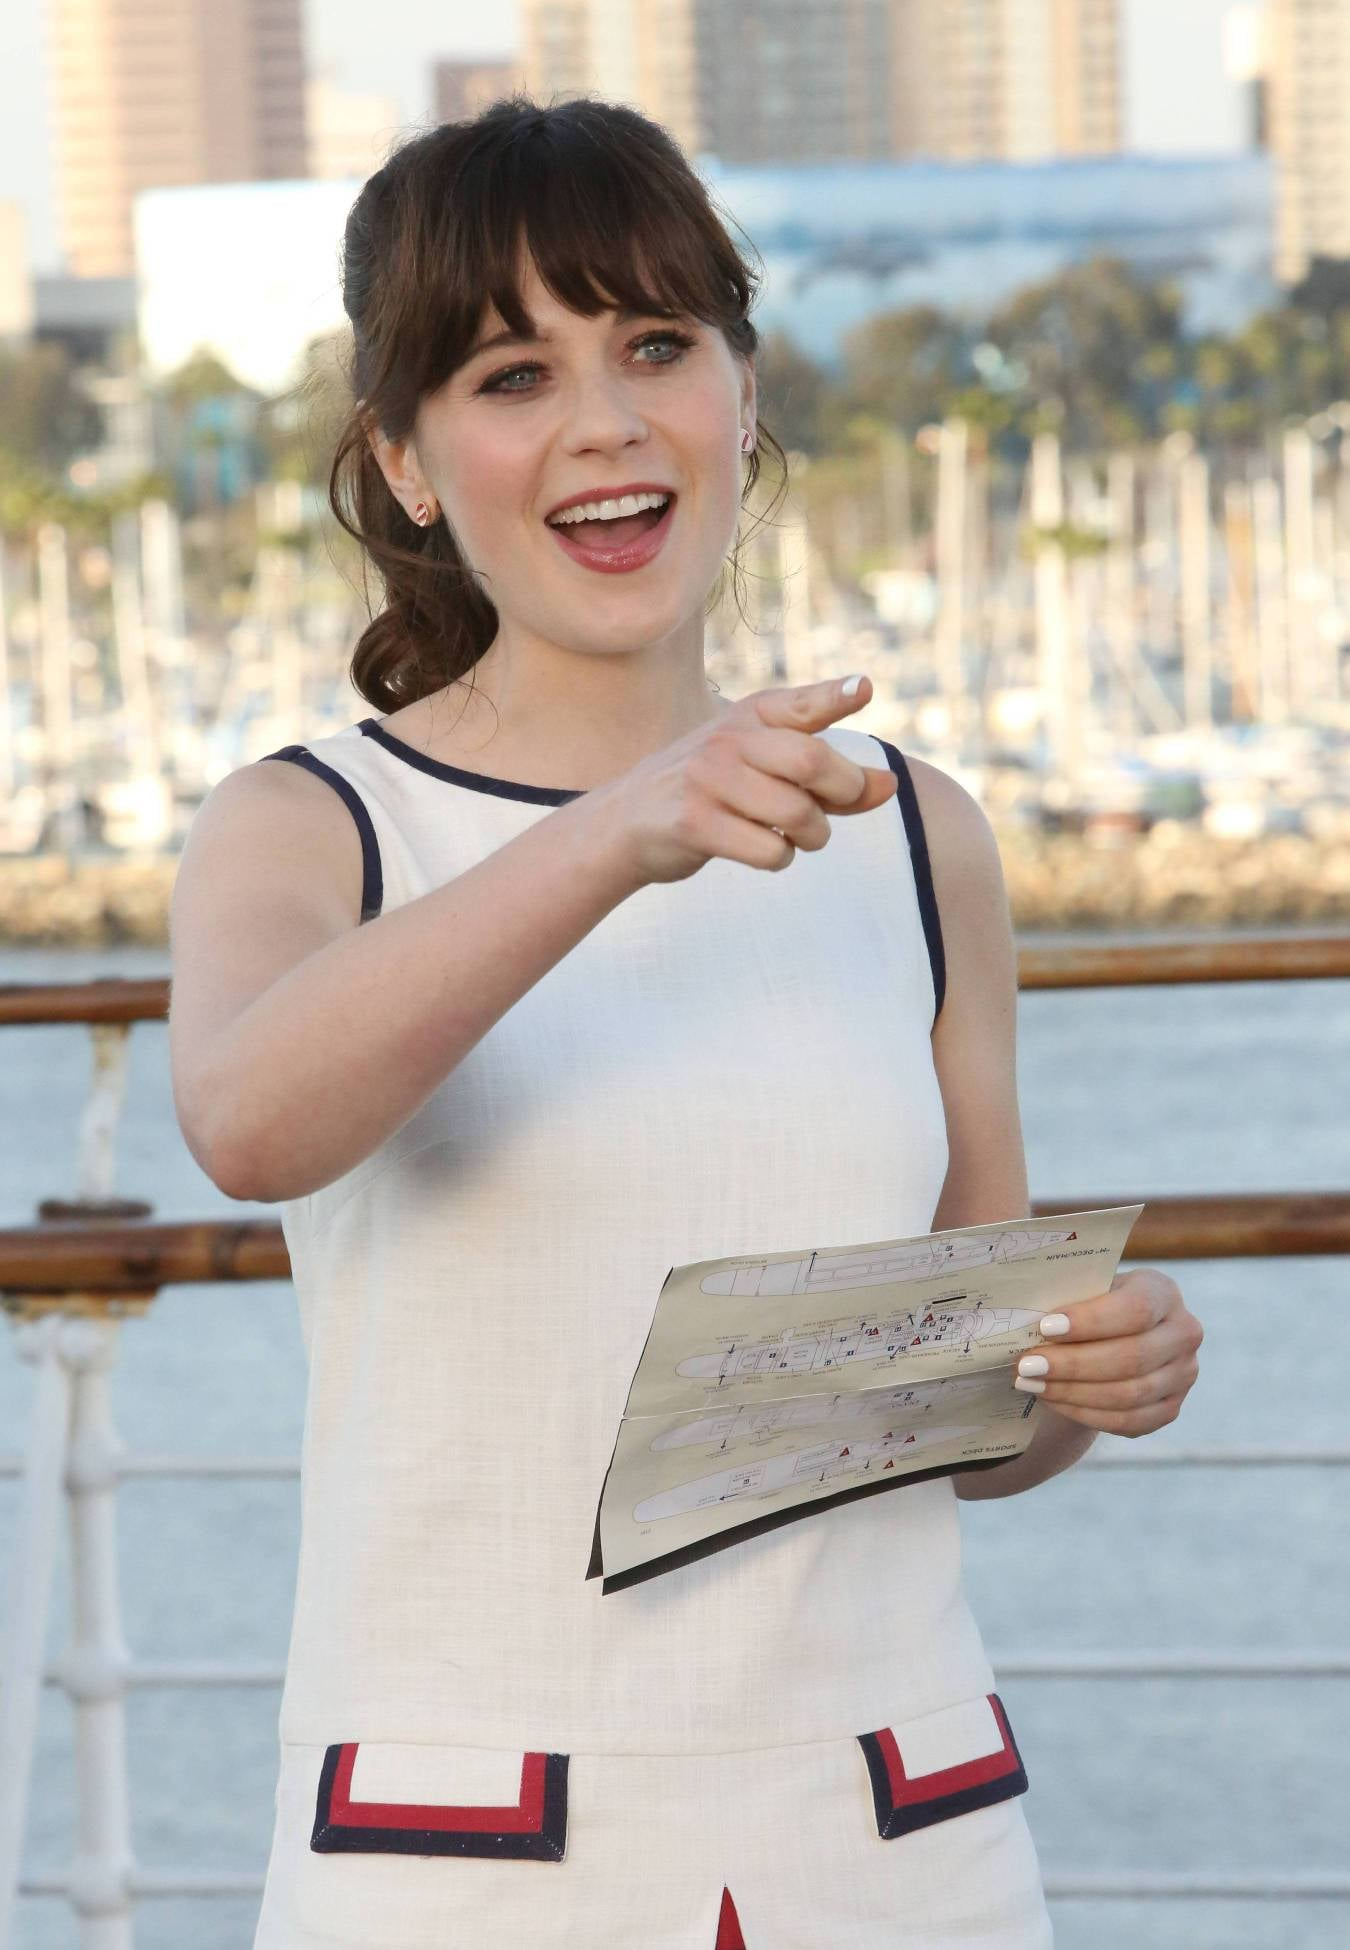 Jess (Zooey Deschanel) is ready to ship off on the season finale of New Girl.